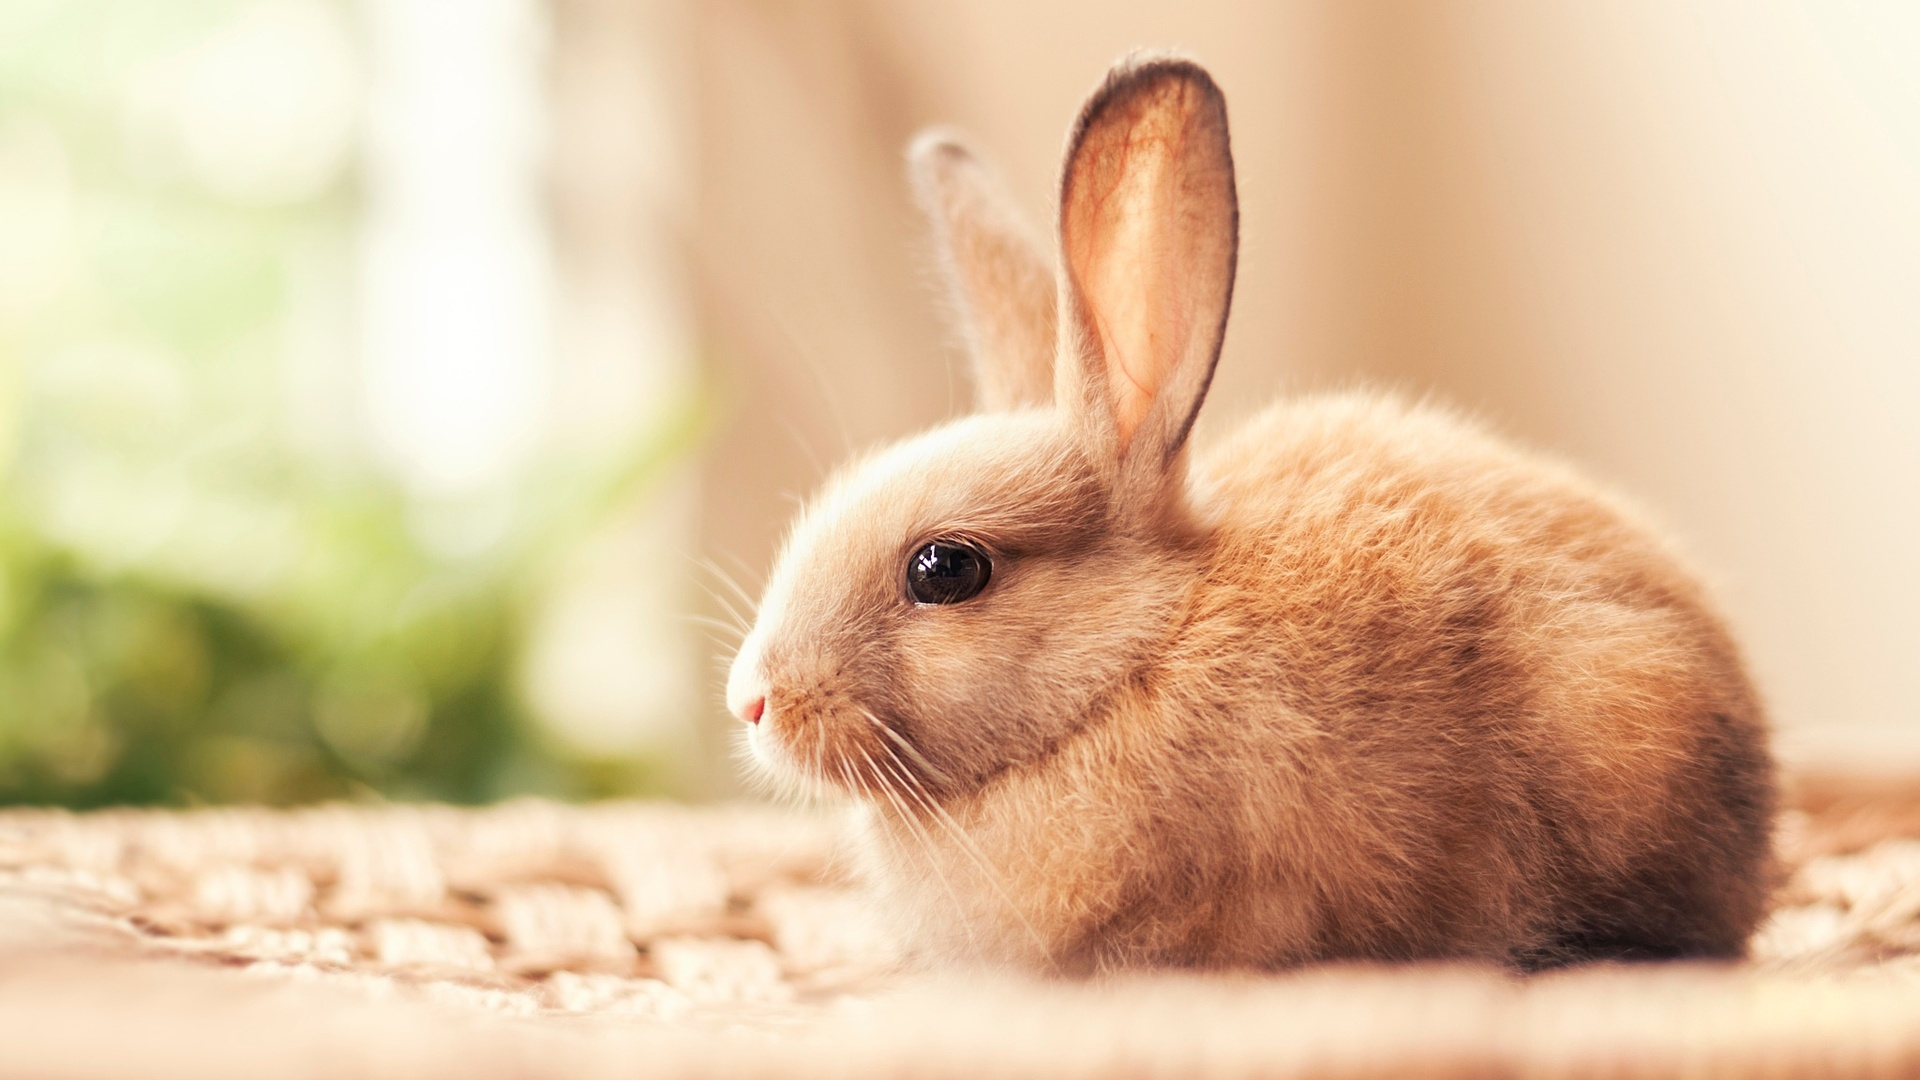 1920x1080 Rabbit Hd Laptop Full Hd 1080p Hd 4k Wallpapers Images Backgrounds Photos And Pictures